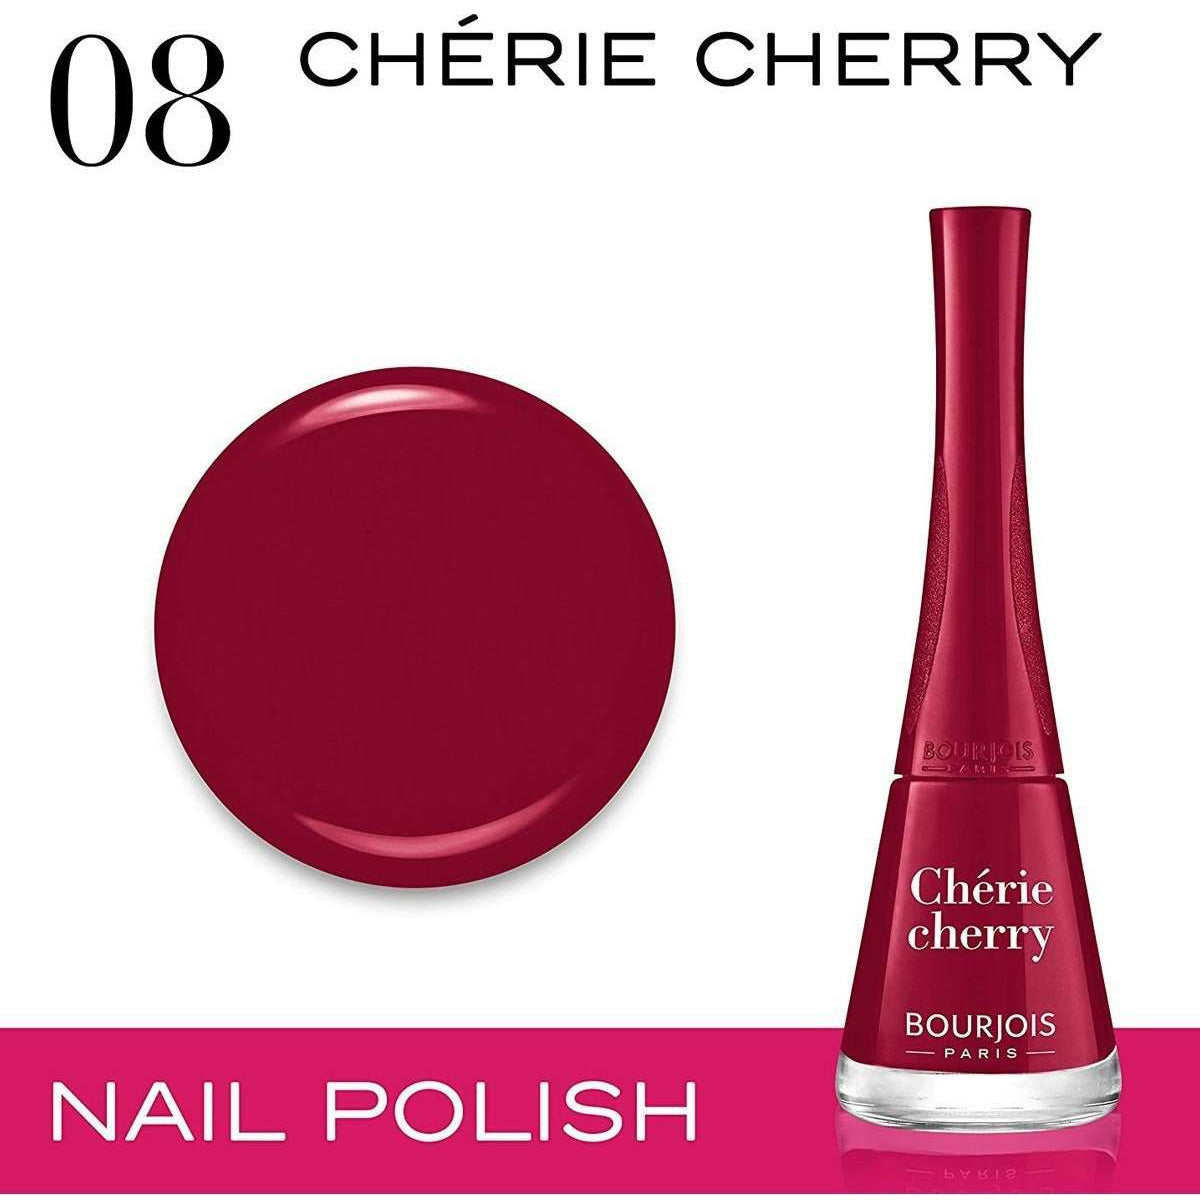 Bourjois Paris - 1 Seconde Nail Ename - 08 Cherie Cherry